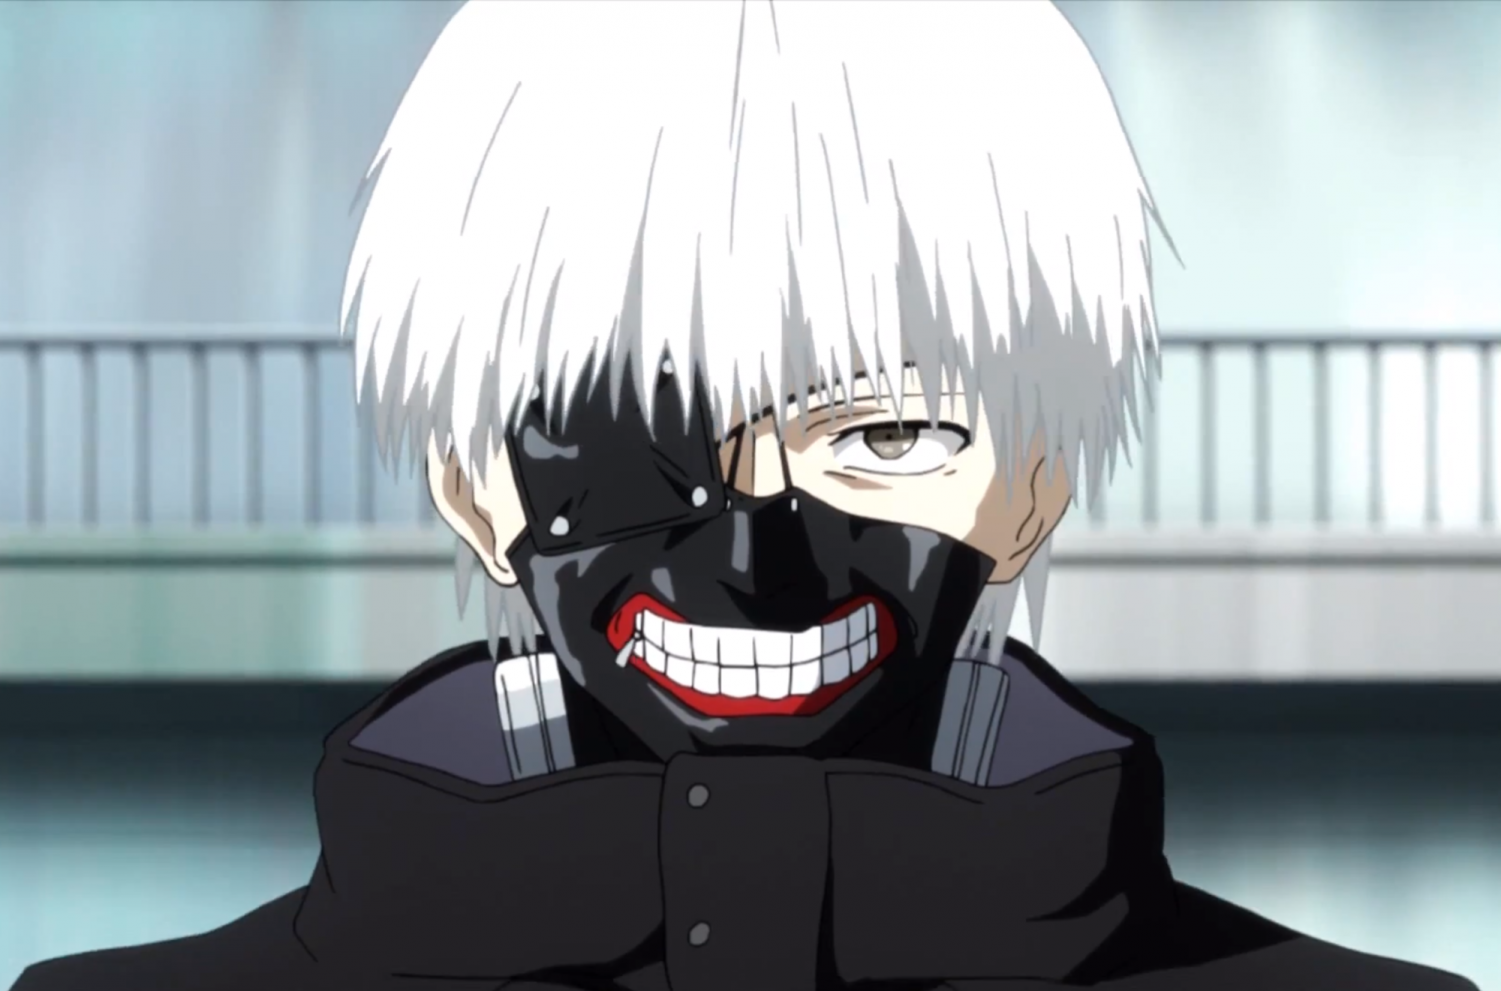 Ken Kaneki is the main character of